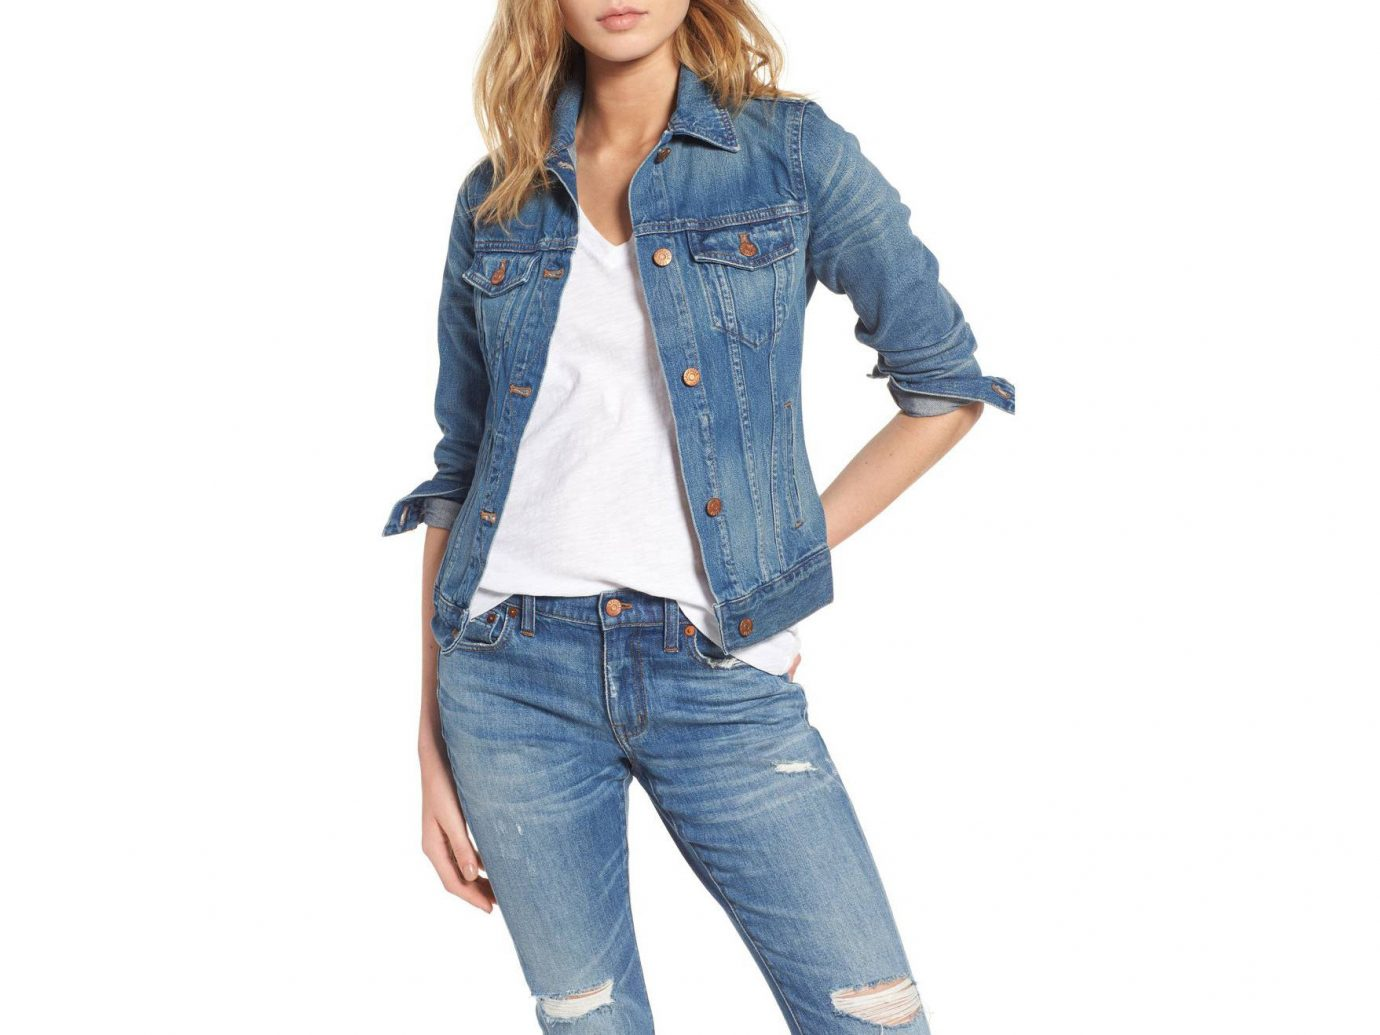 803e9f8e8217ca Style + Design Travel Shop person clothing jeans denim shoulder trouser  standing sleeve jacket button fashion